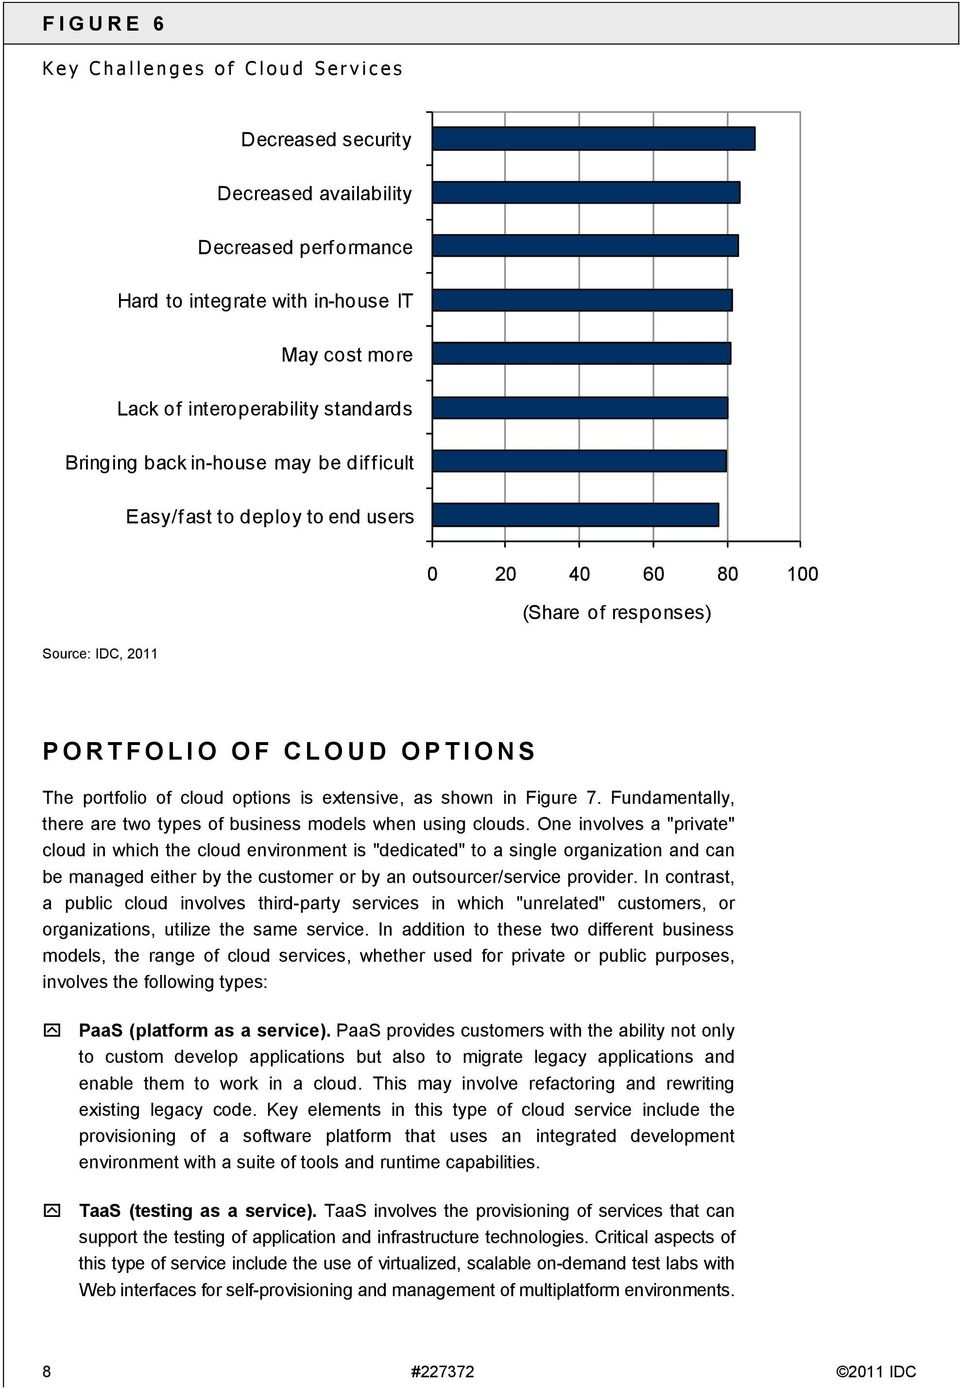 of cloud options is extensive, as shown in Figure 7. Fundamentally, there are two types of business models when using clouds.